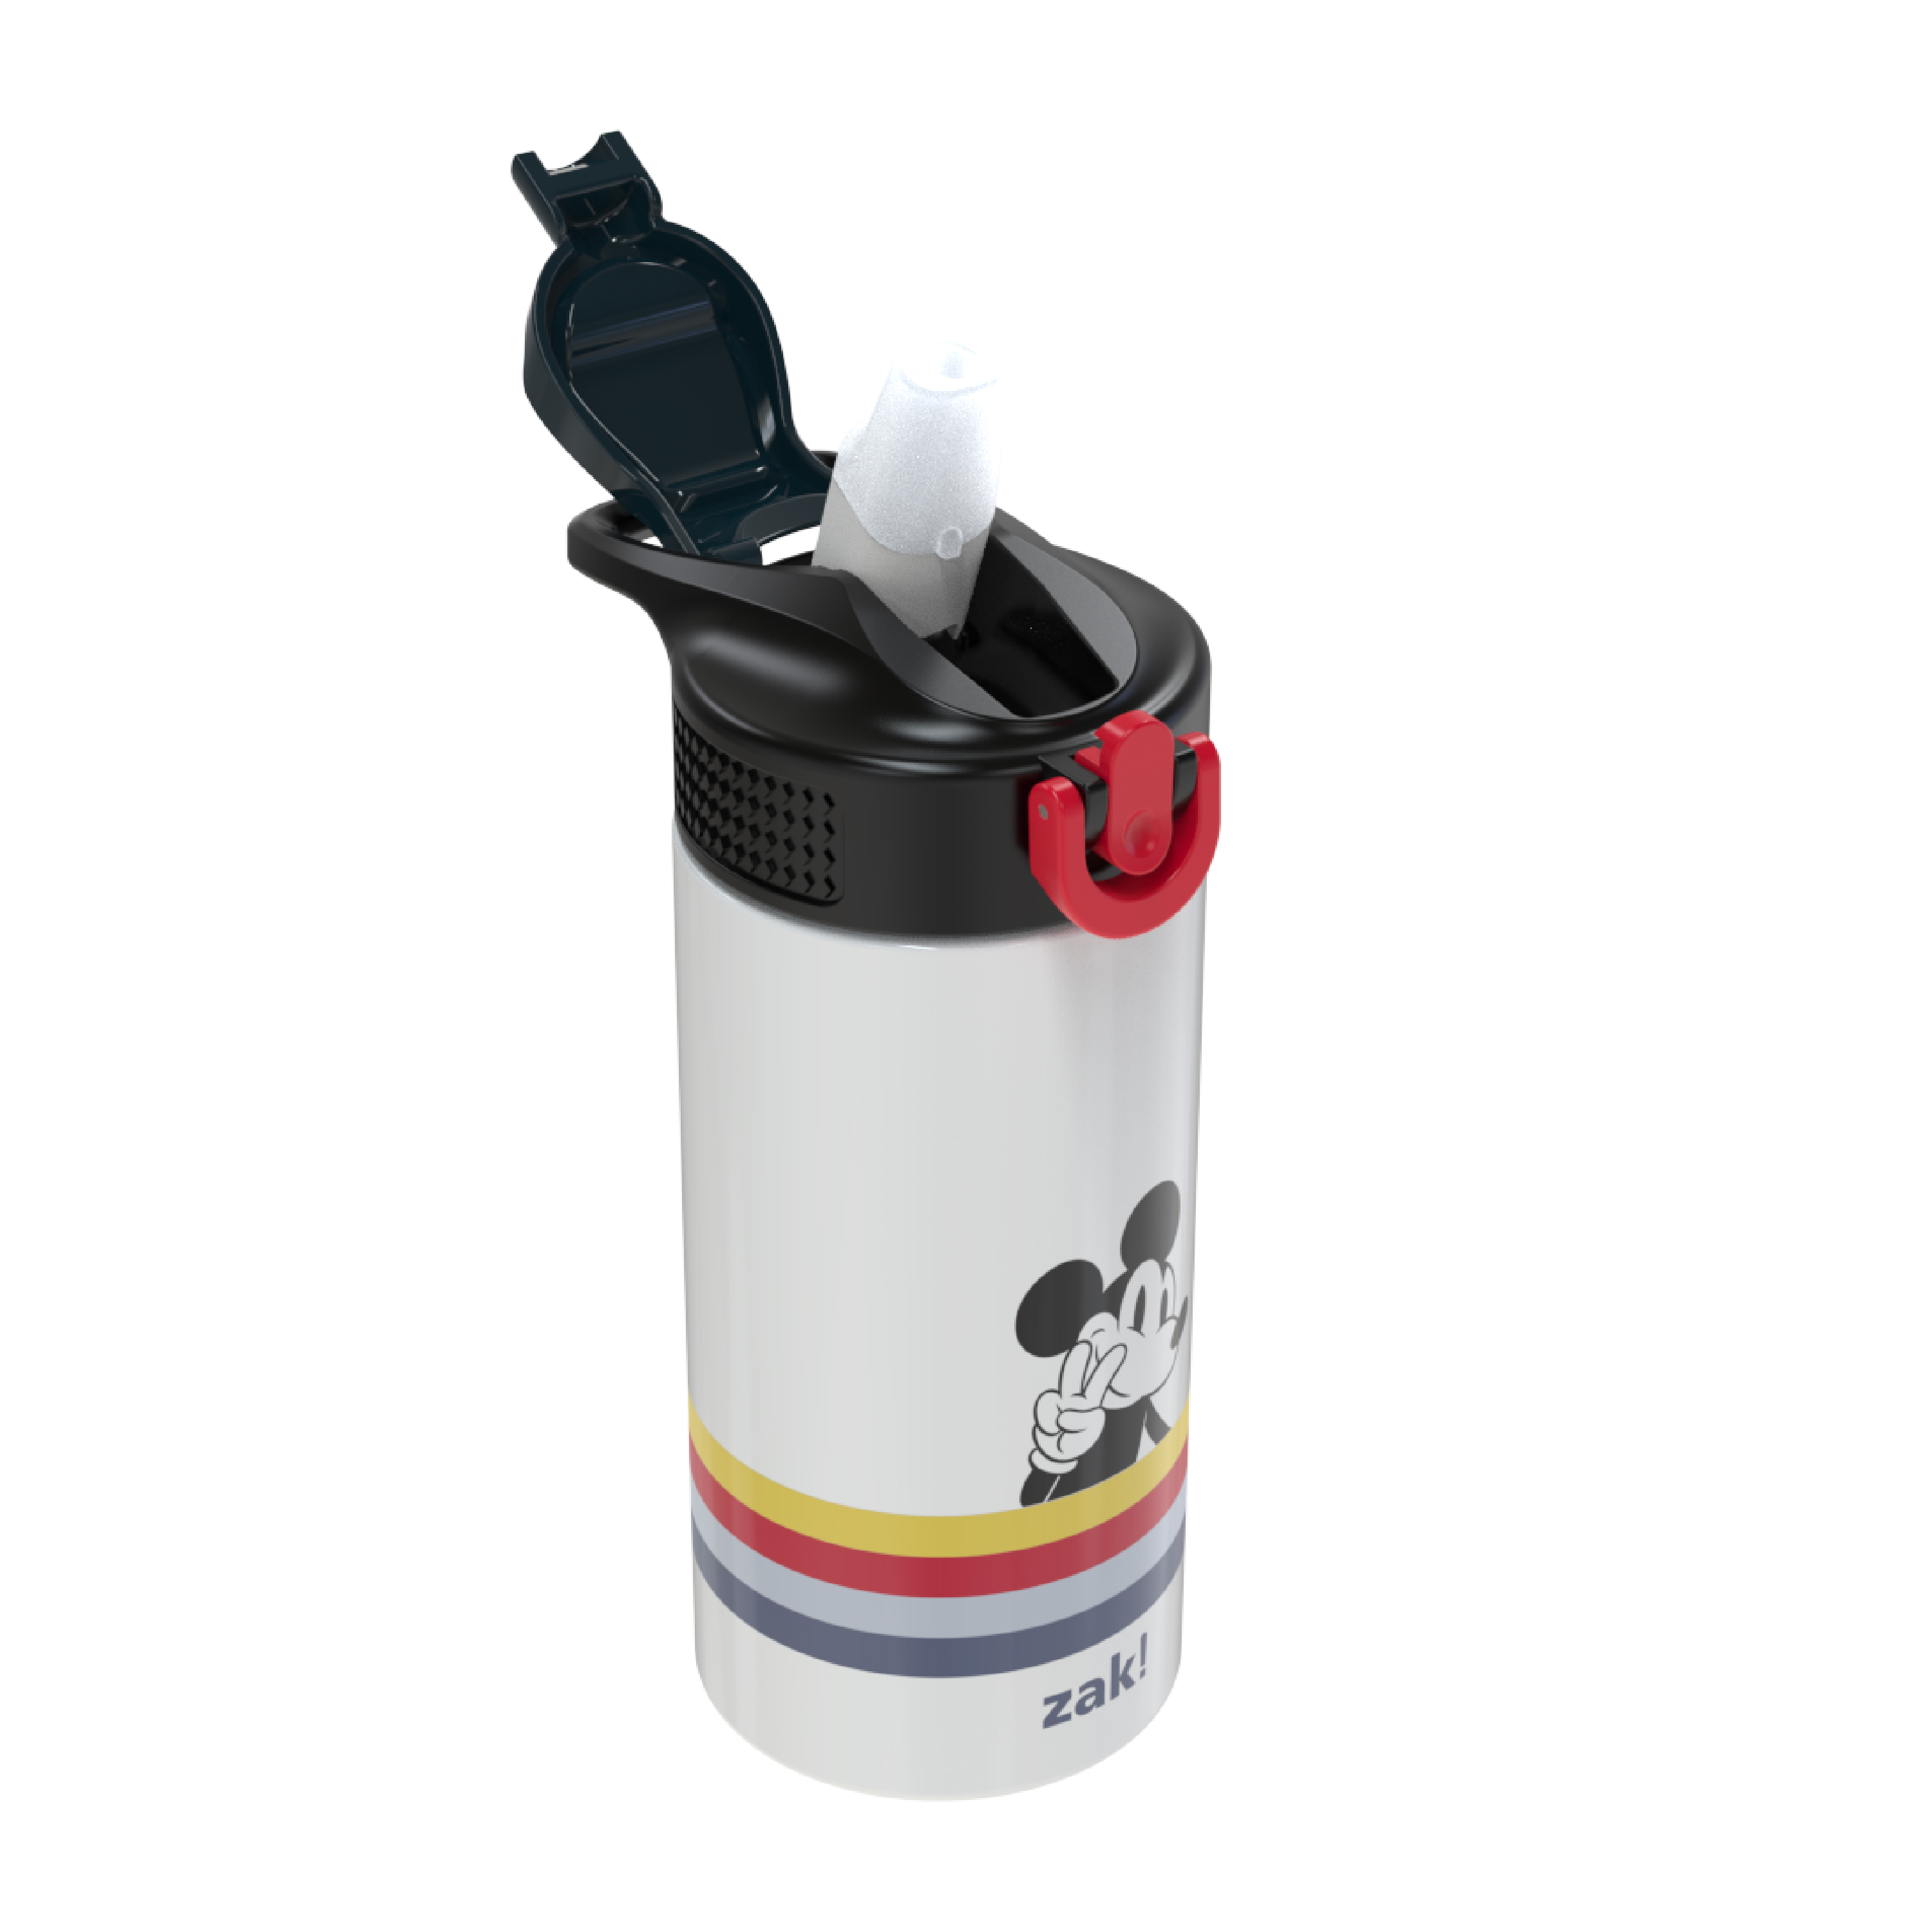 Disney 14 ounce Stainless Steel Vacuum Insulated Water Bottle, Mickey Mouse and Minnie Mouse slideshow image 6